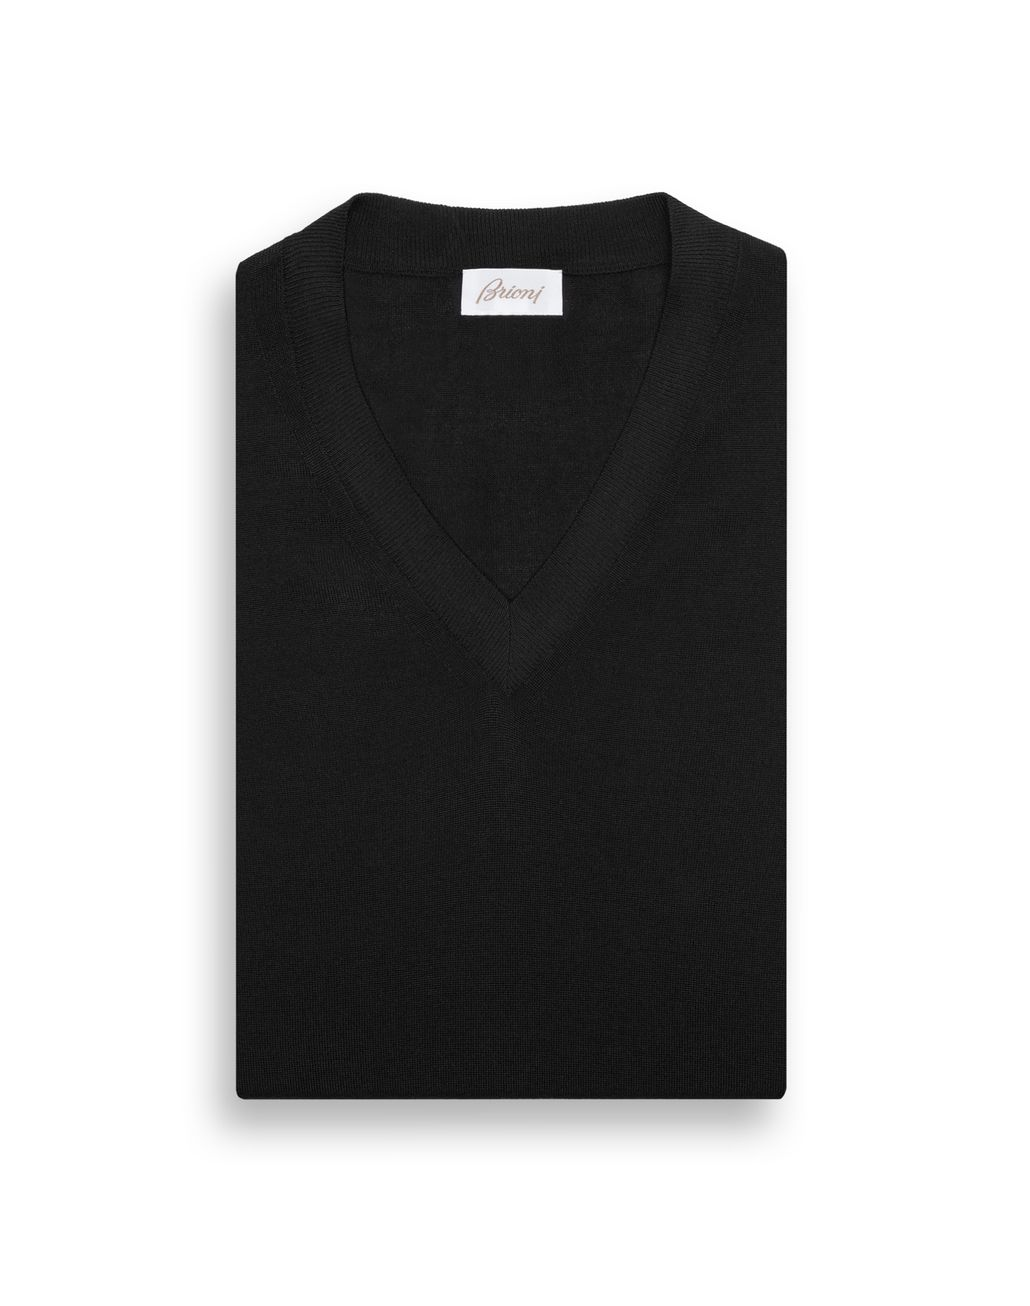 BRIONI 'Essential' Black V-Neck Sweater Knitwear [*** pickupInStoreShippingNotGuaranteed_info ***] e